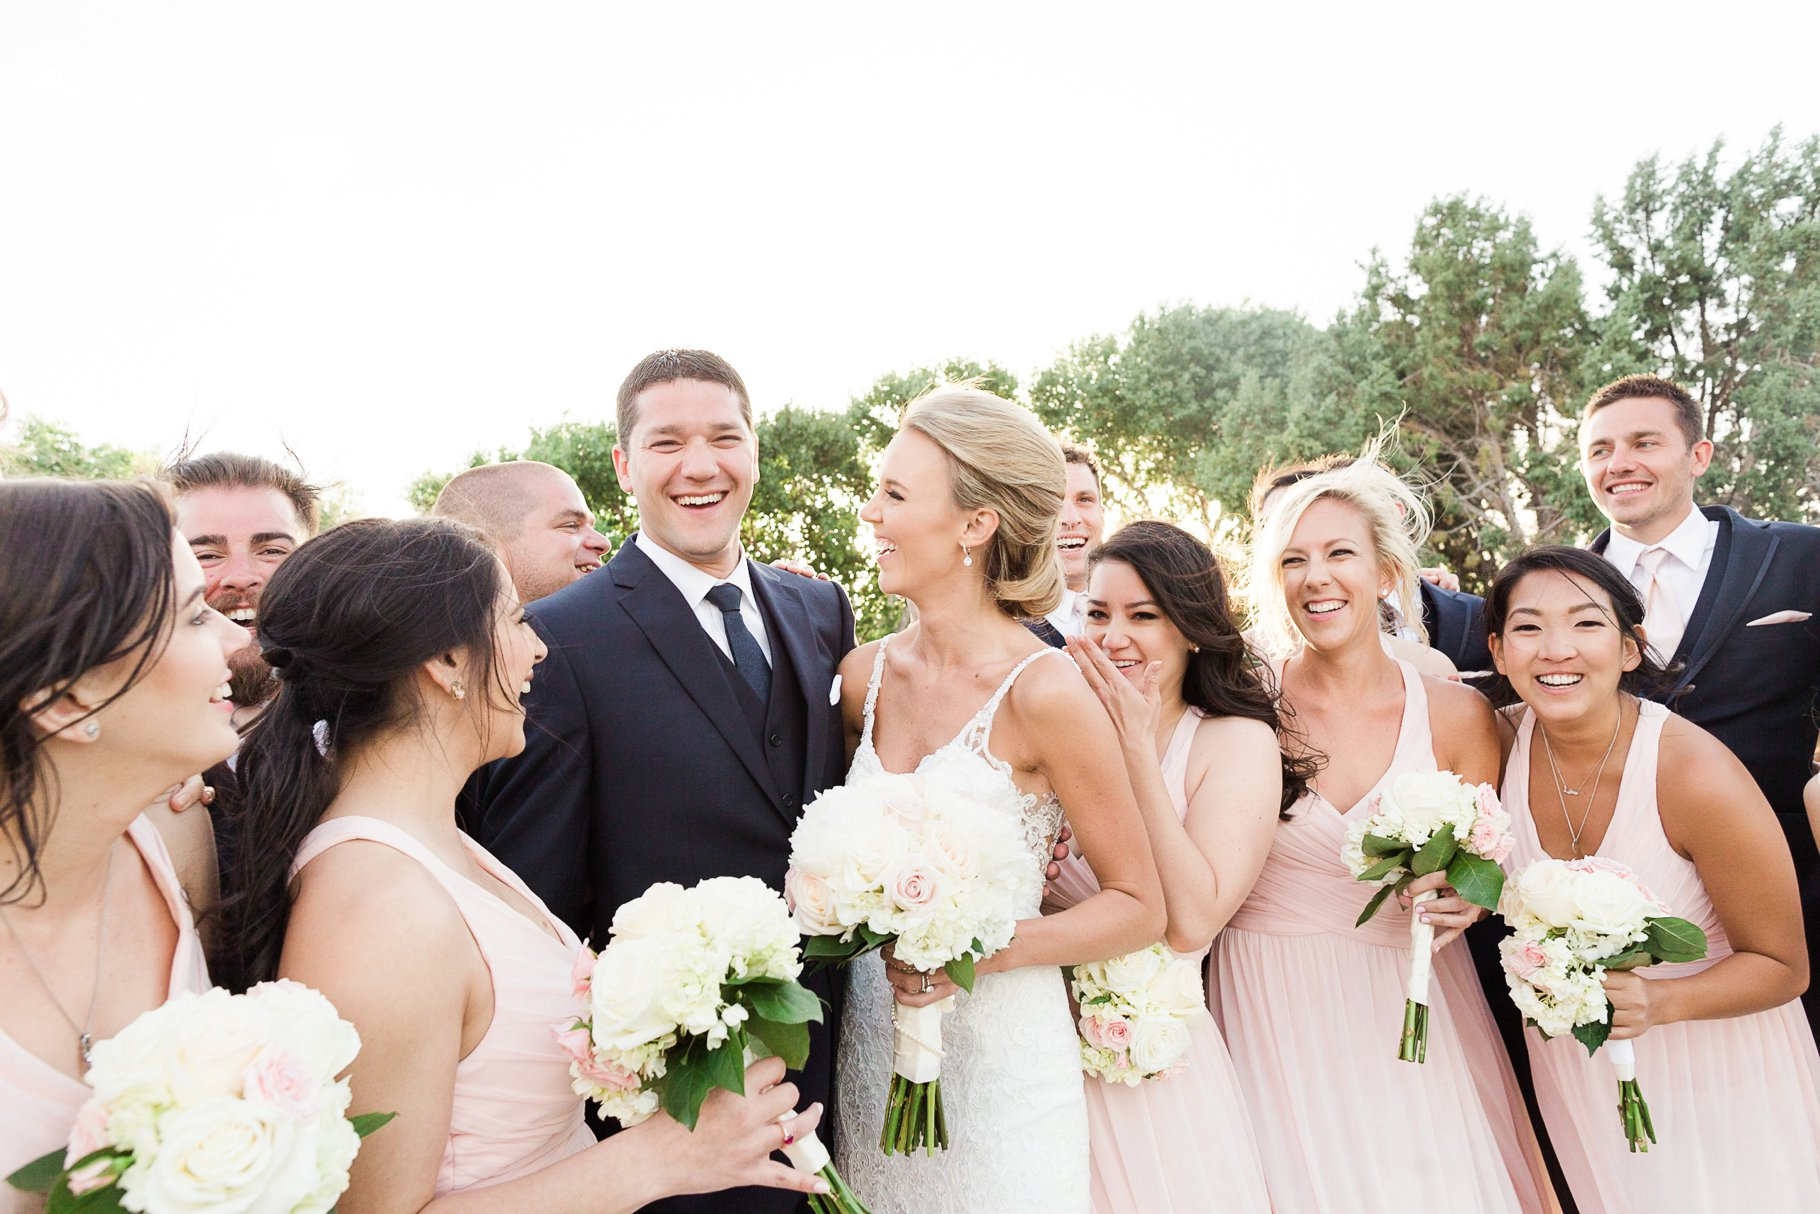 sedona wedding-102_GRETCHEN WAKEMAN PHOTOGRAPHY.jpg